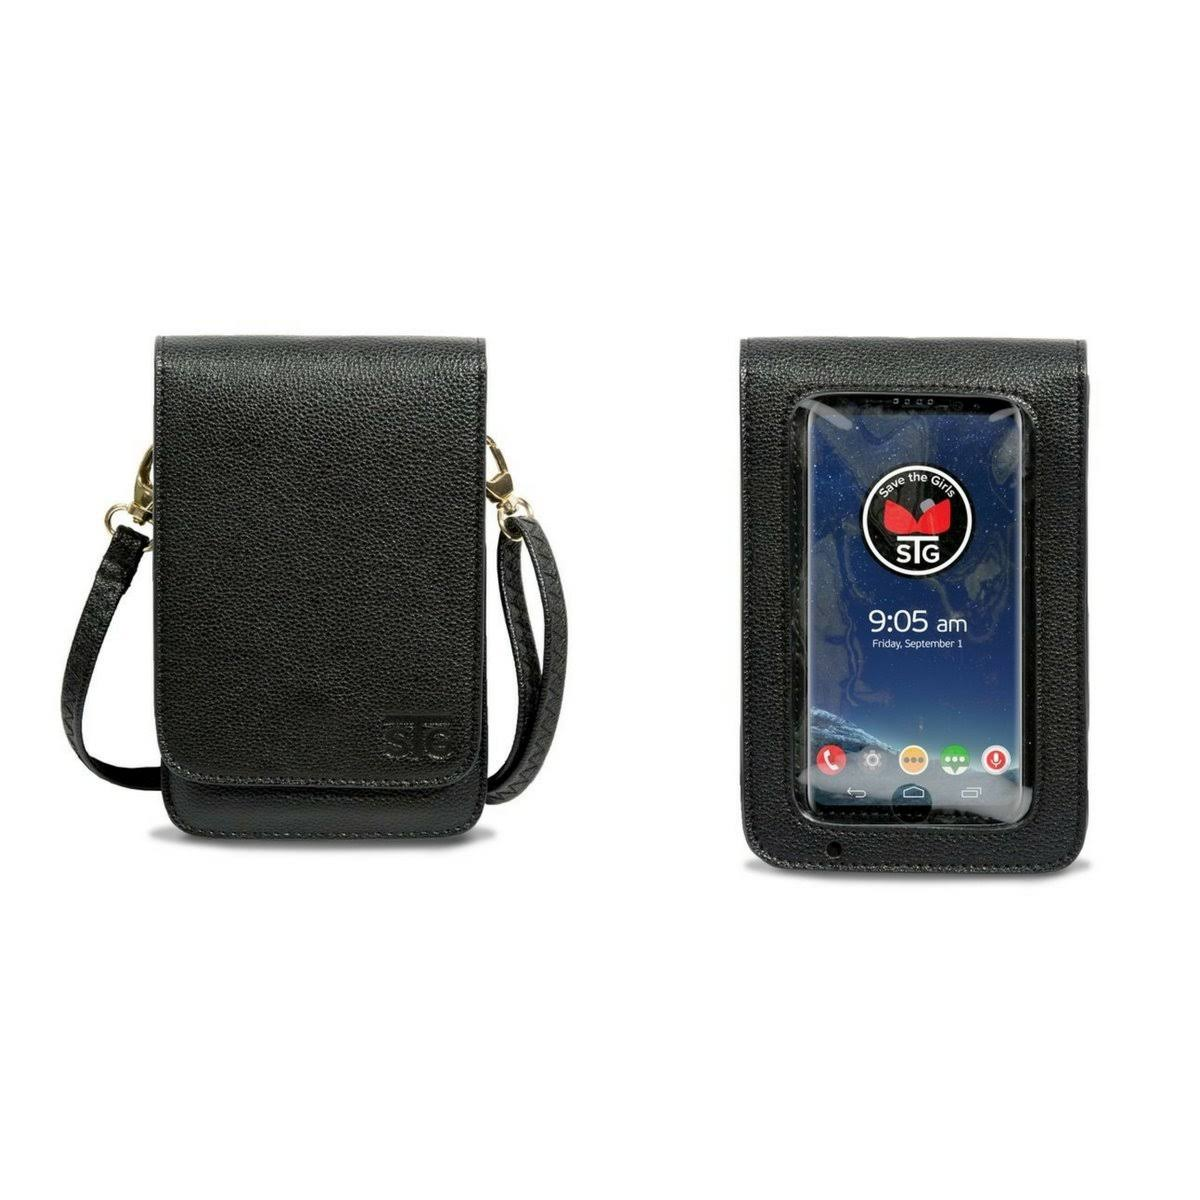 Metro Cell Phone Wallet Purse With Extra Deep Pocket - Black